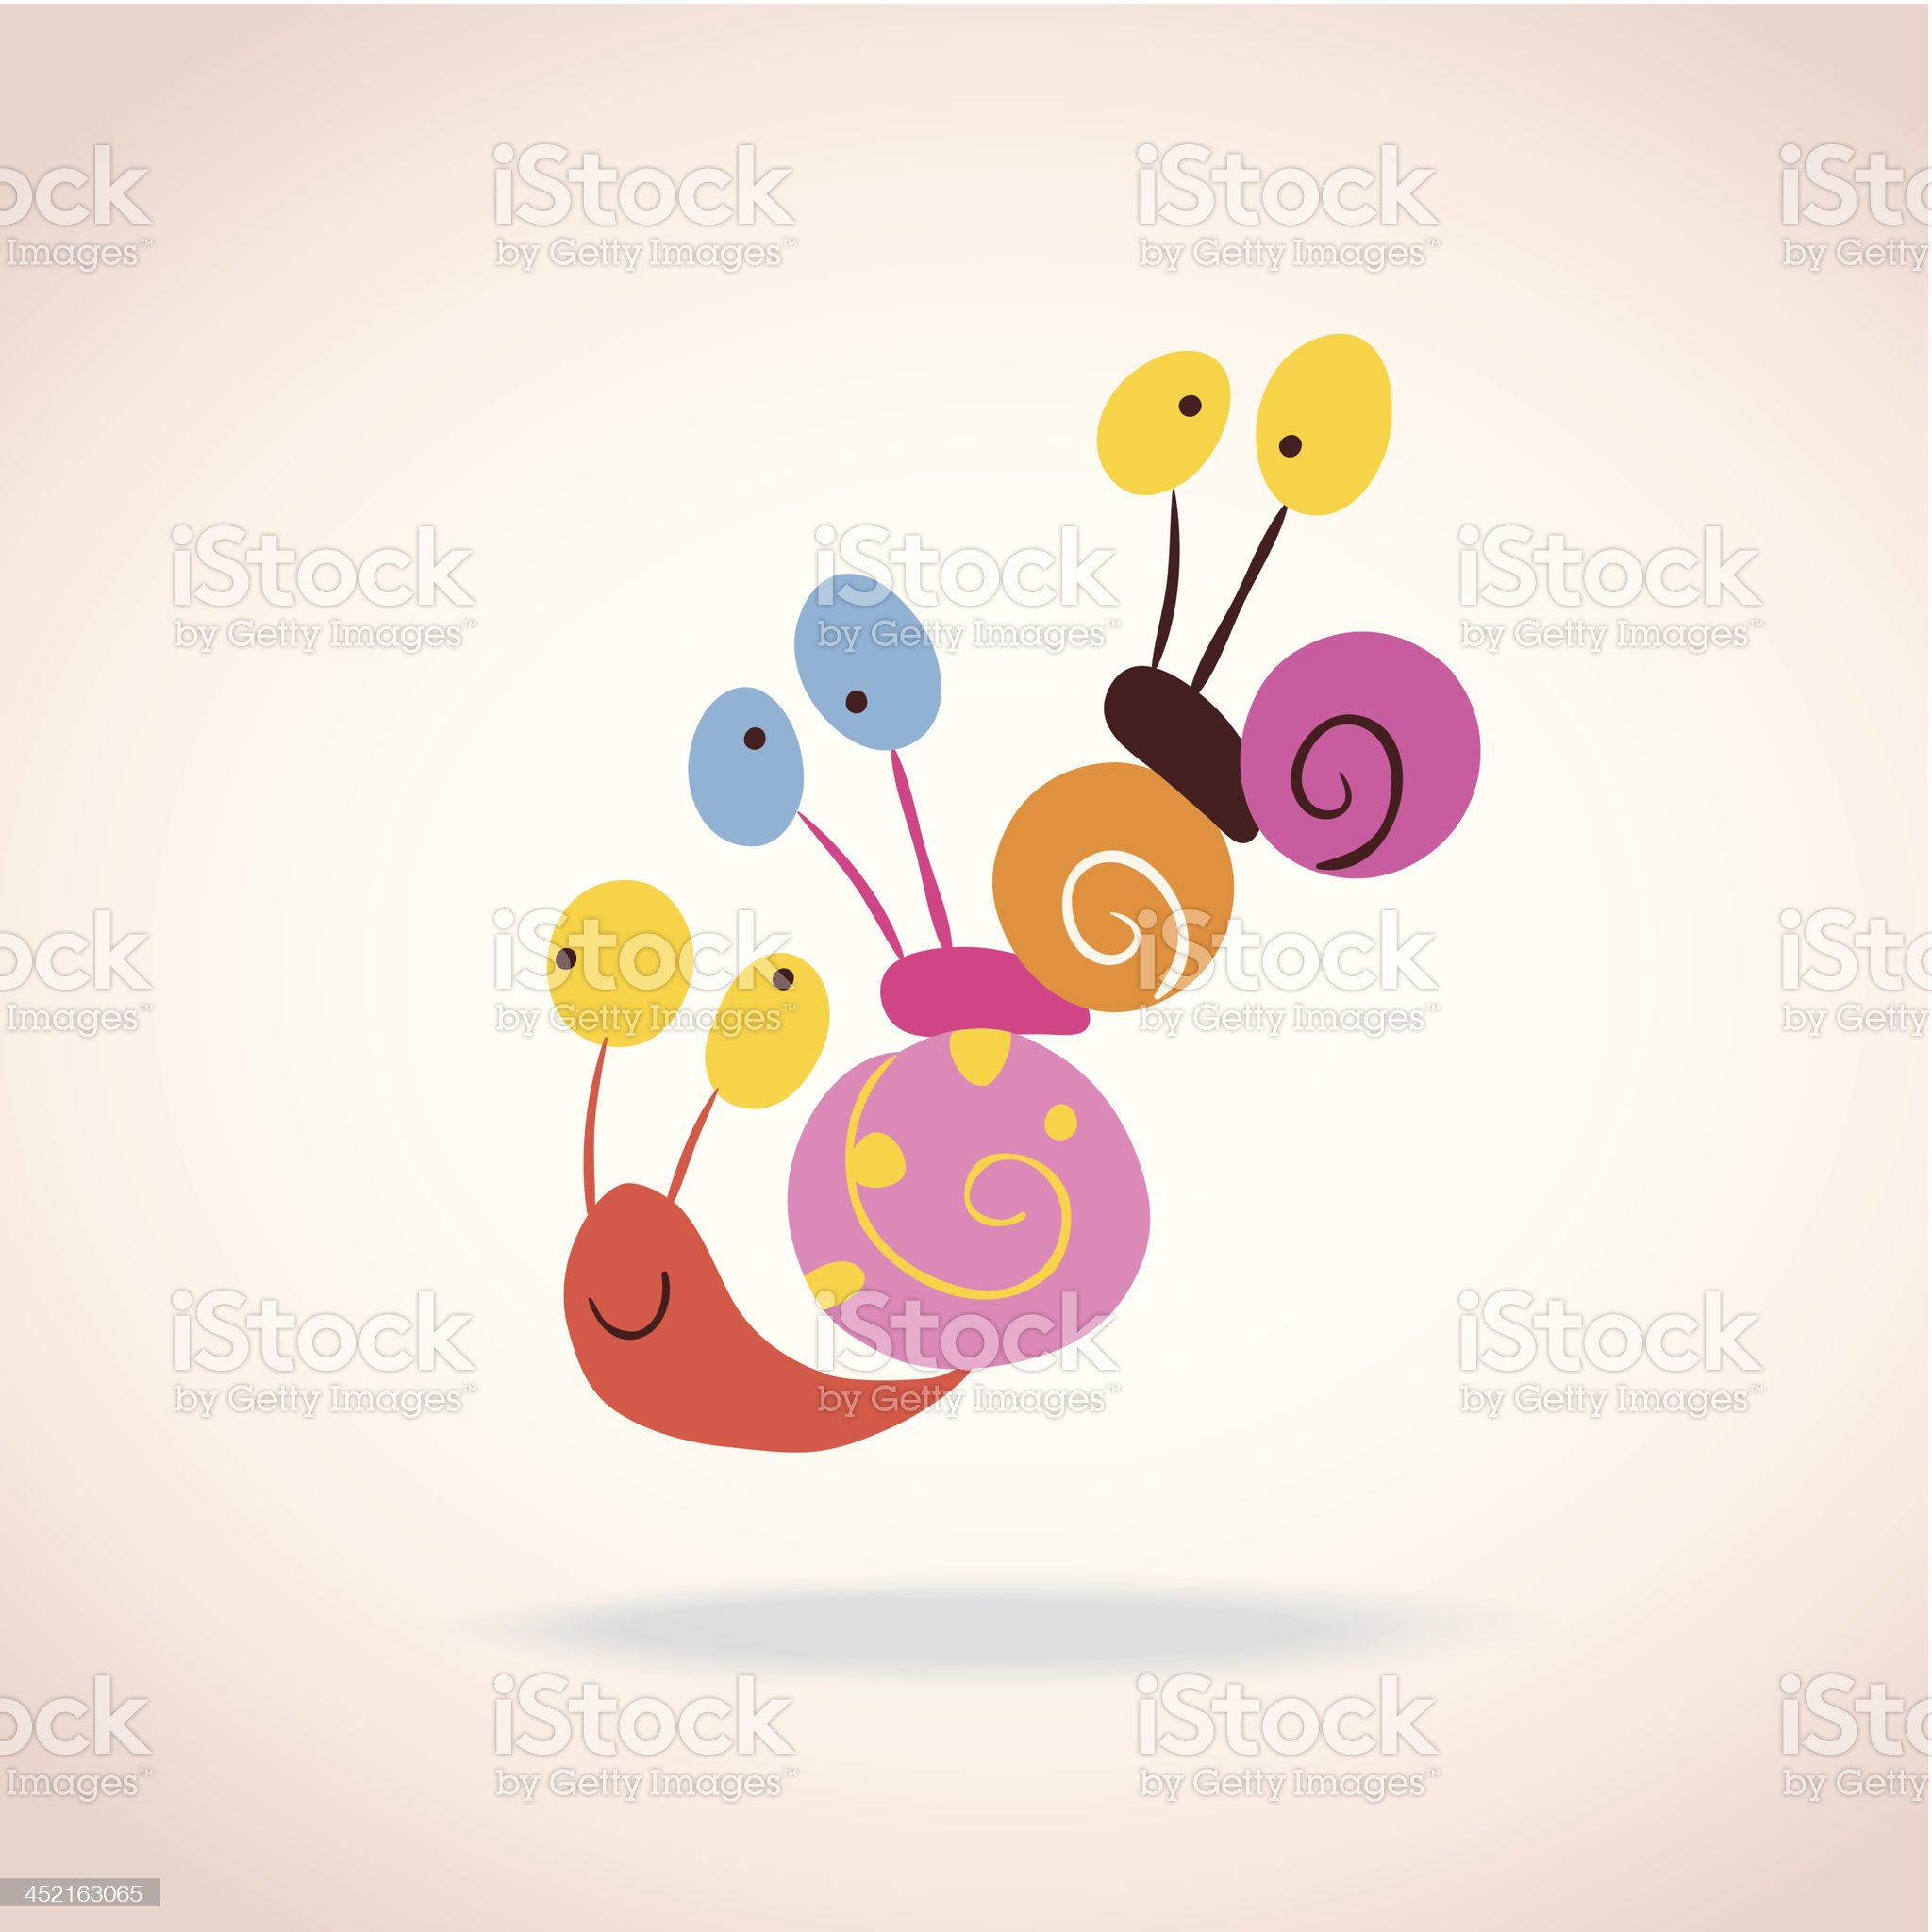 snail characters royalty-free stock vector art